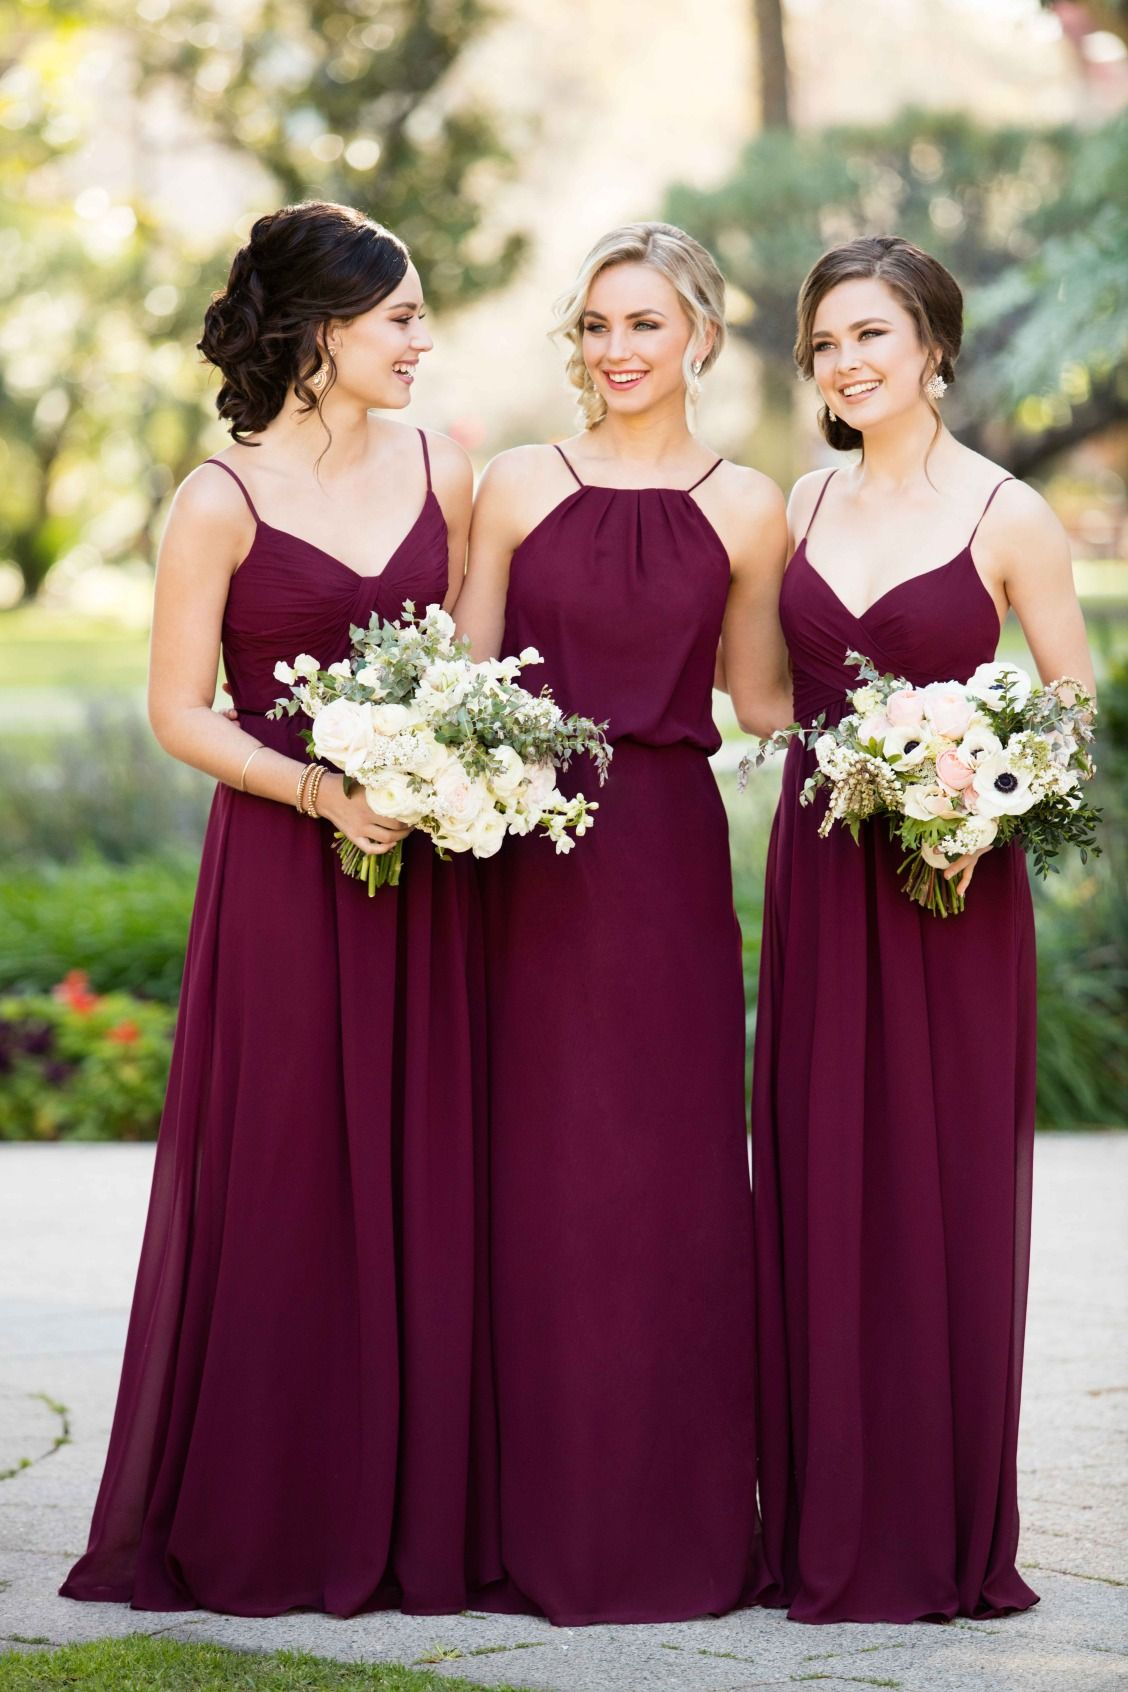 c8002ebae221 ... beautiful gowns. Burgundy Bridesmaids Dress for a mix and match bridal  party!